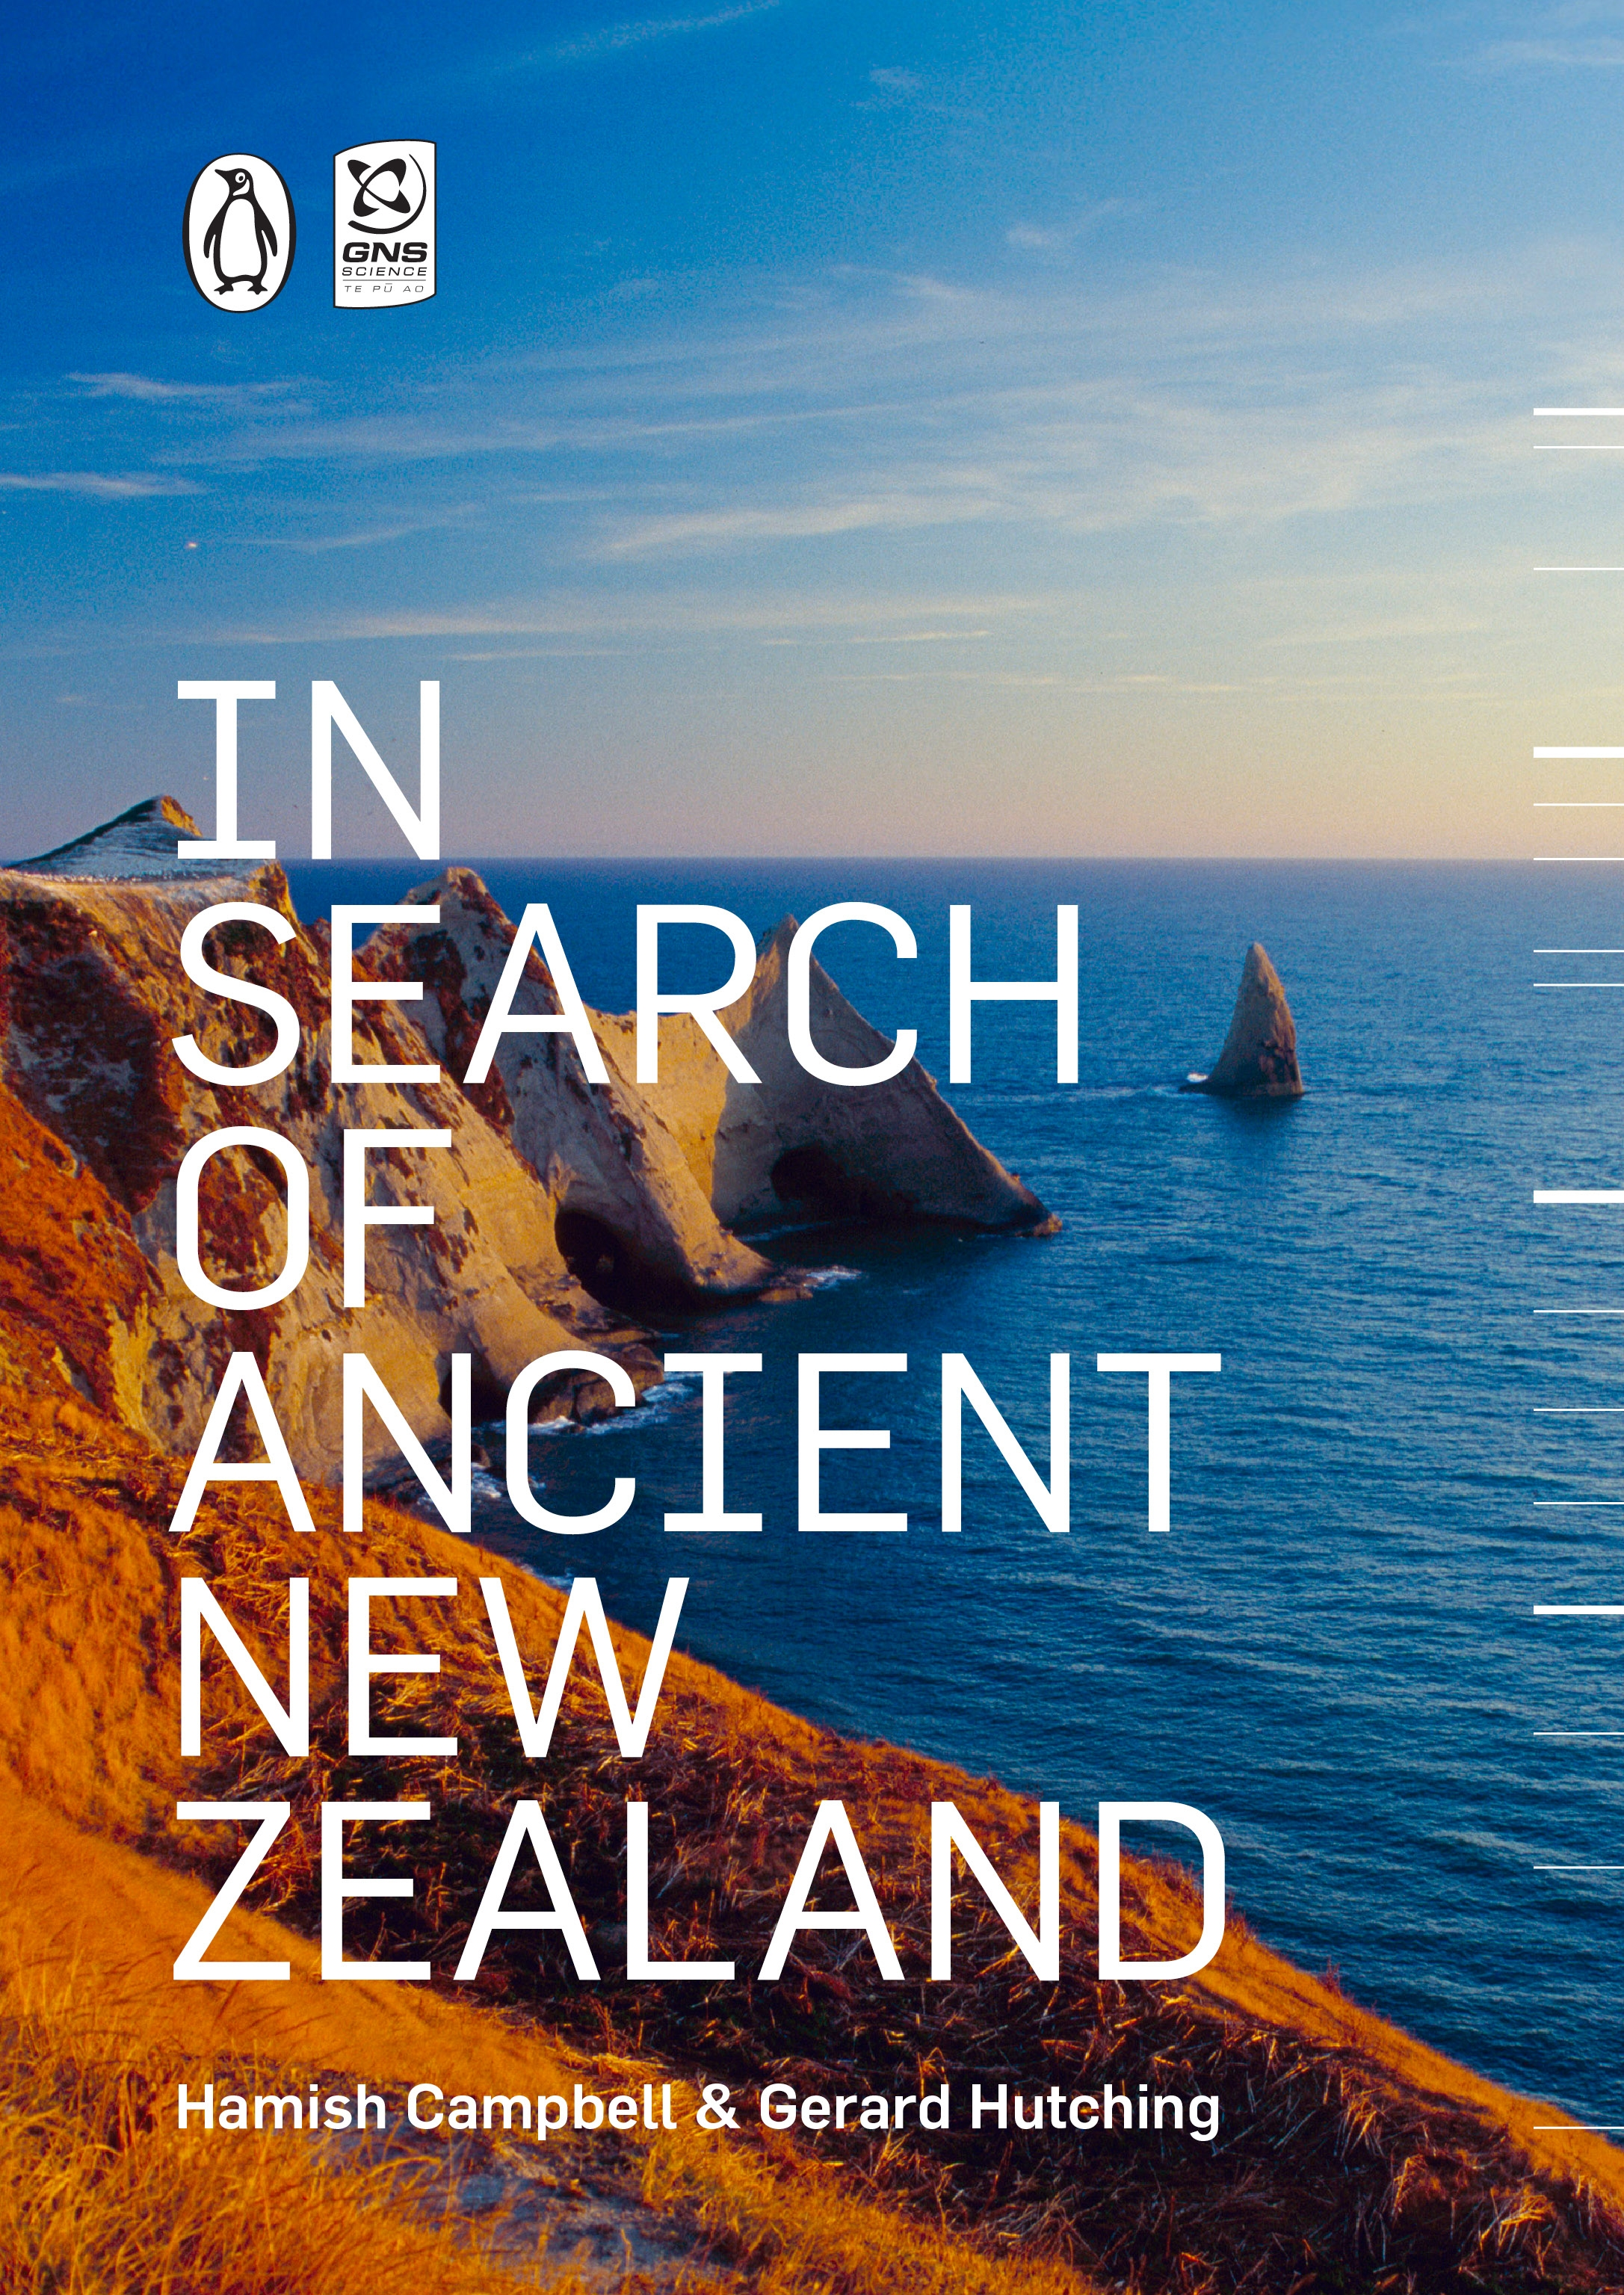 Book Covers Nz ~ In search of ancient new zealand penguin books australia